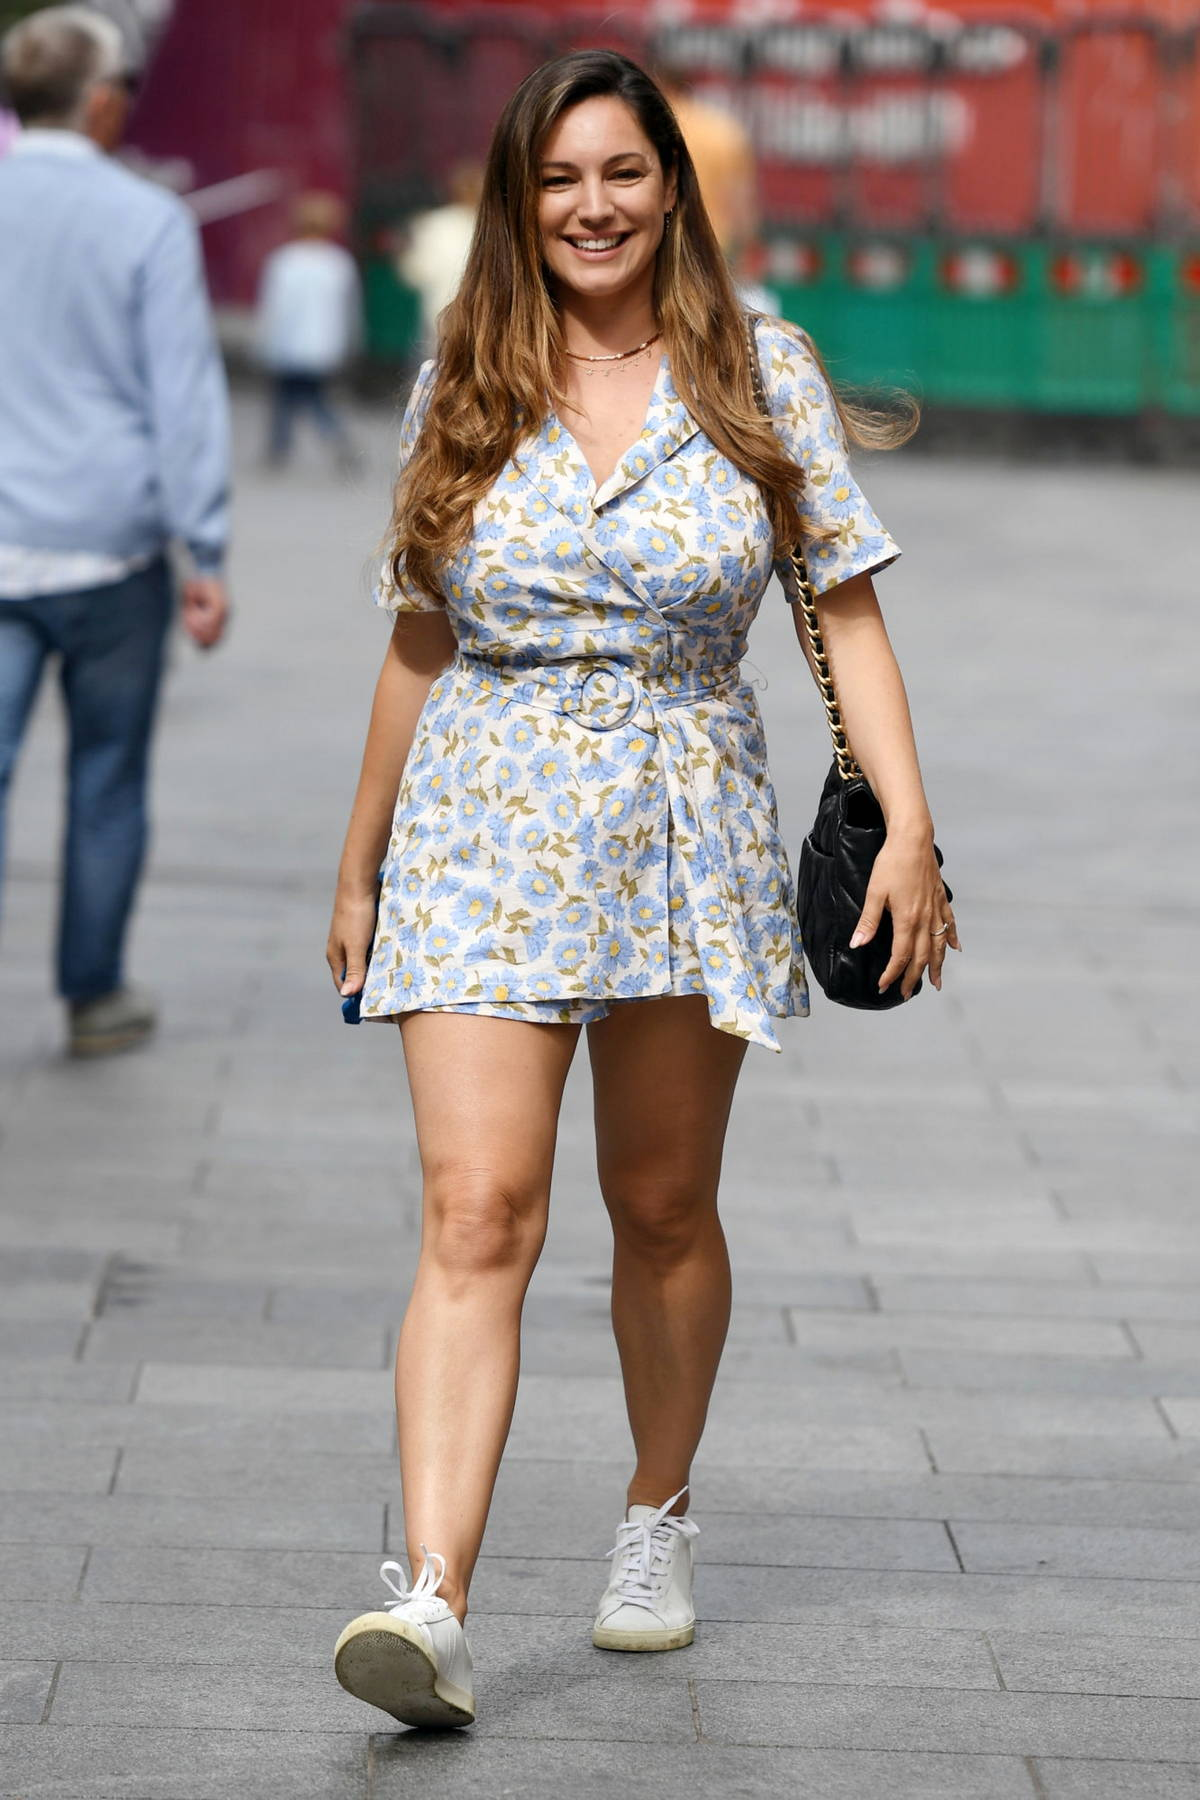 Kelly Brook looks cute in a shorts floral print dress while leaving Heart Radio studios in London, UK